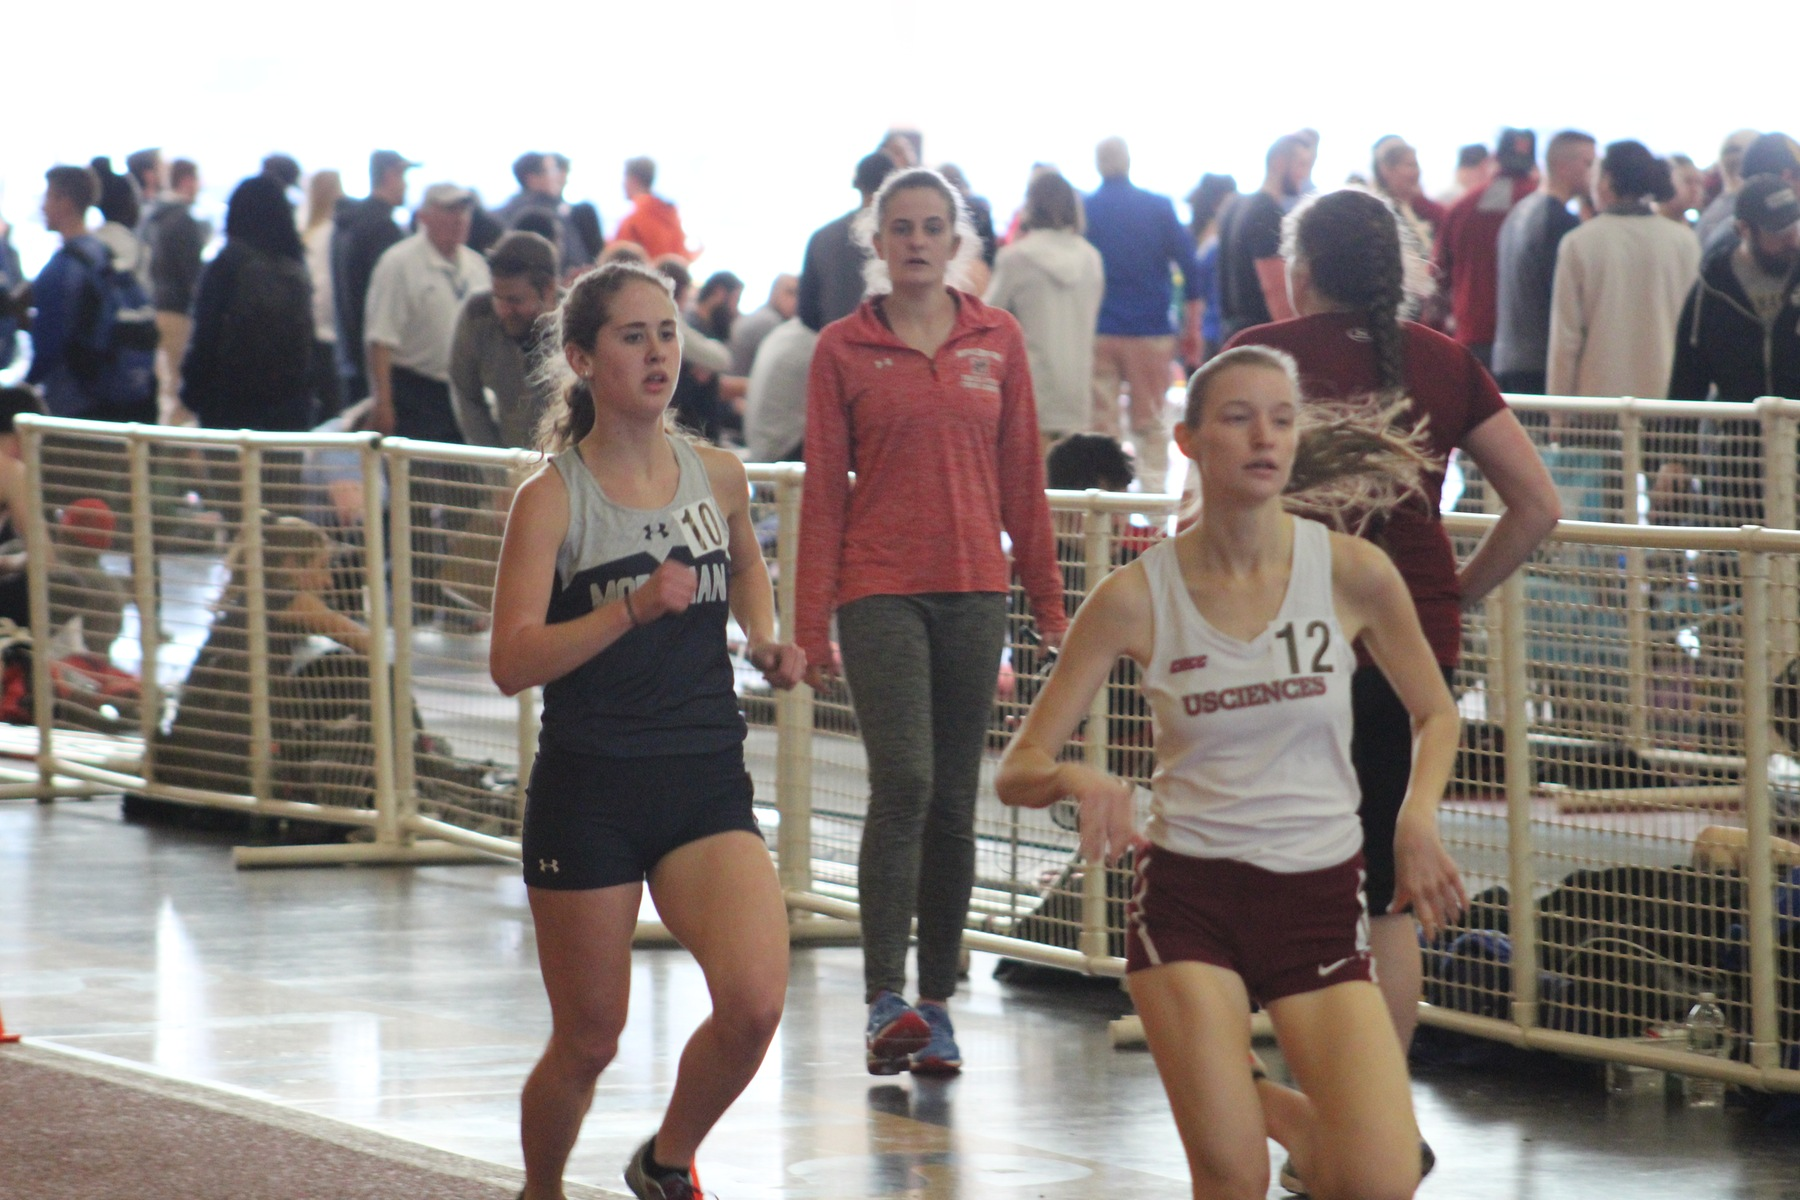 Sauers and Houghton Finish 1-2 in the Mile; Numerous Collegiate Bests Set as Women's Track and Field Closes Winter Season